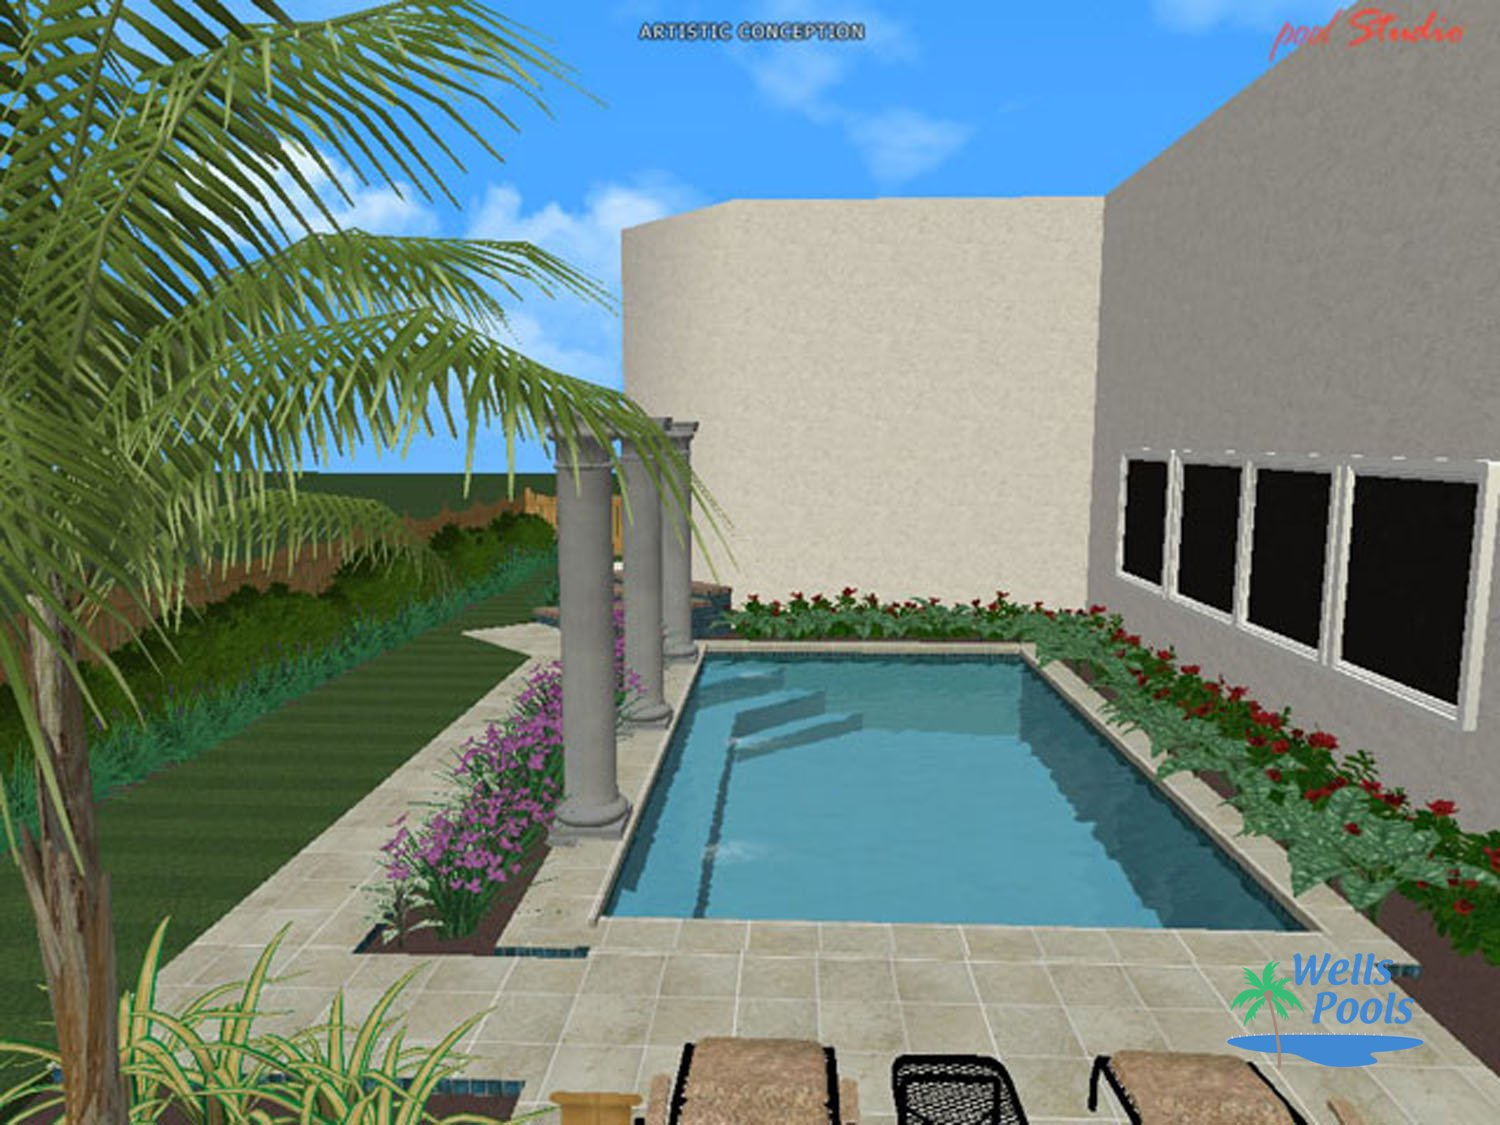 ... 3D Design #007 By Wells Pools ...